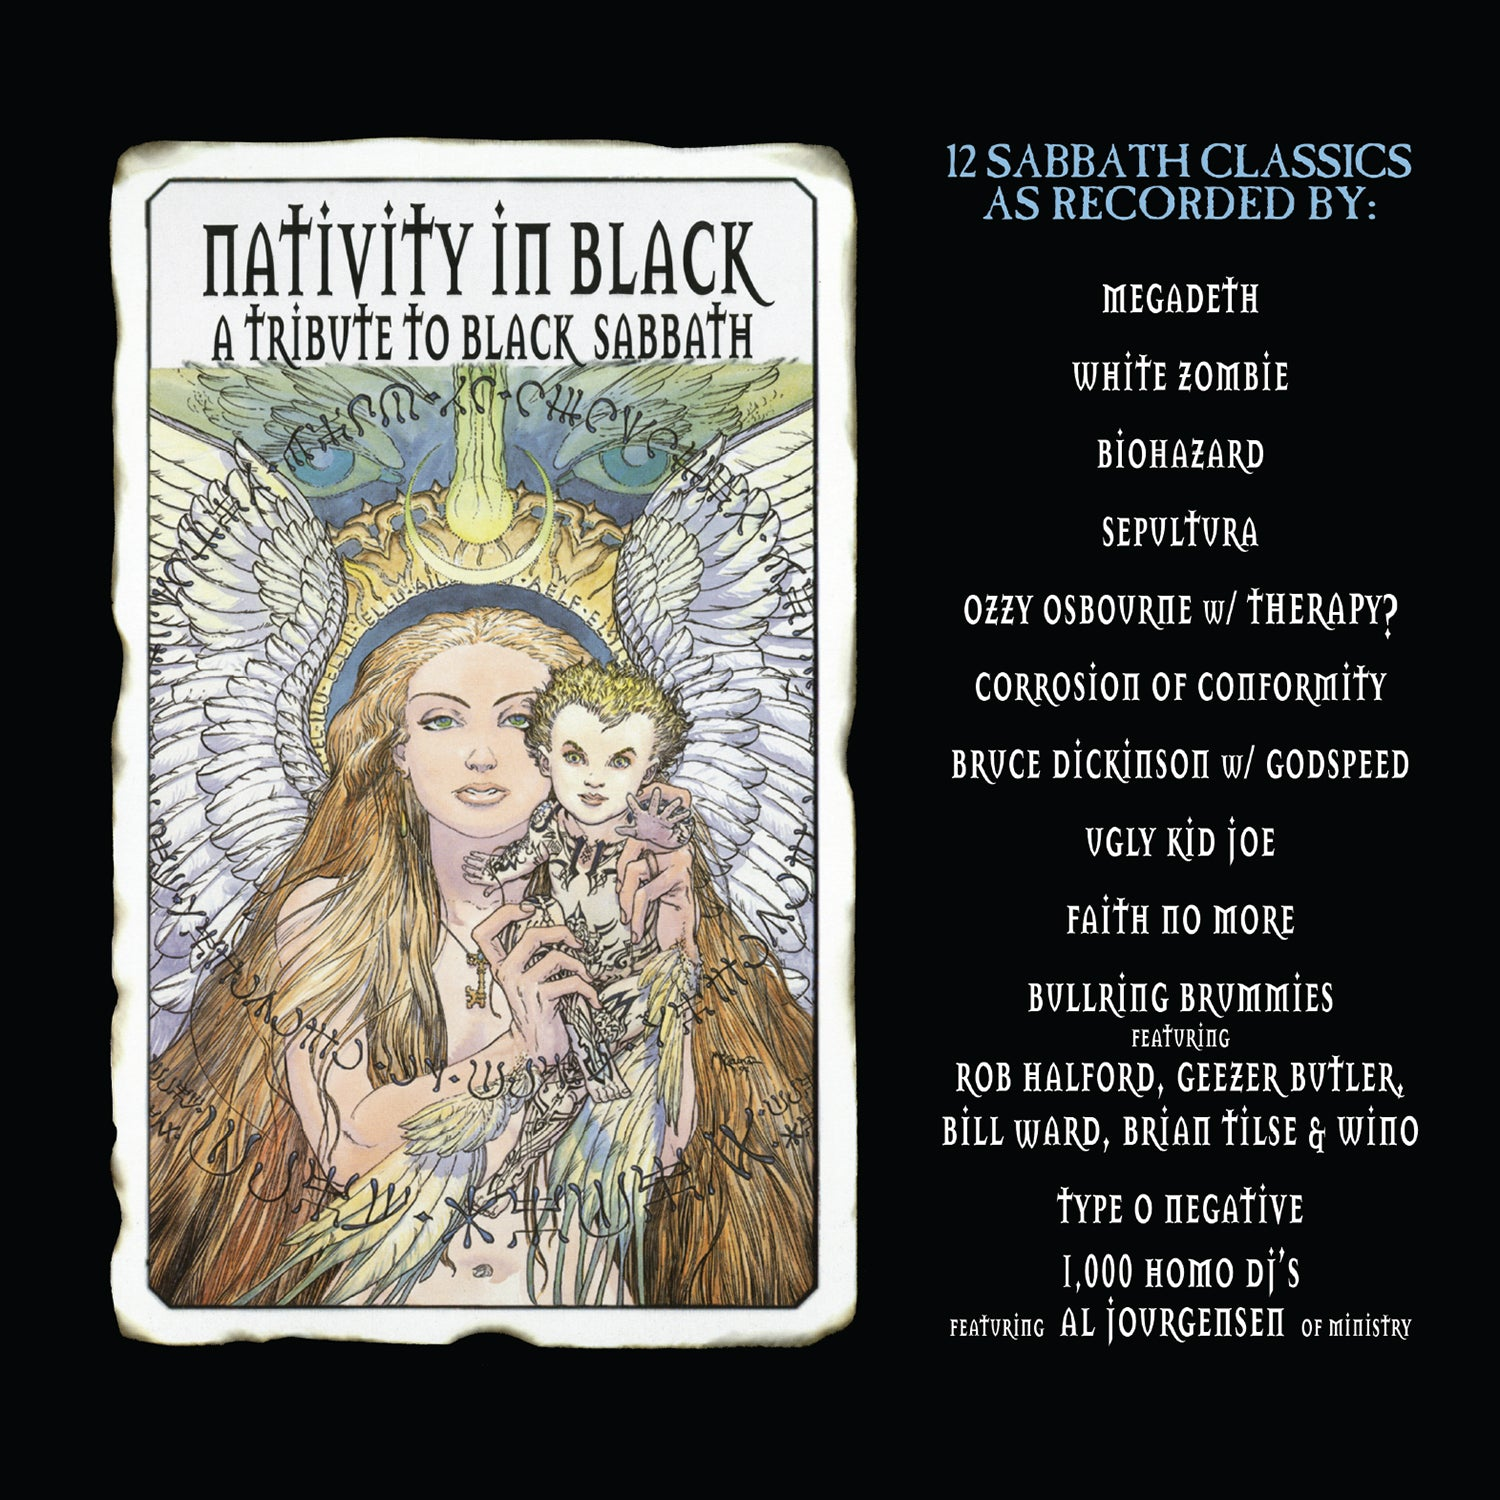 Various Artists - Nativity in Black (RSD 2020 Drop Two) 2LP Vinyl Record Album